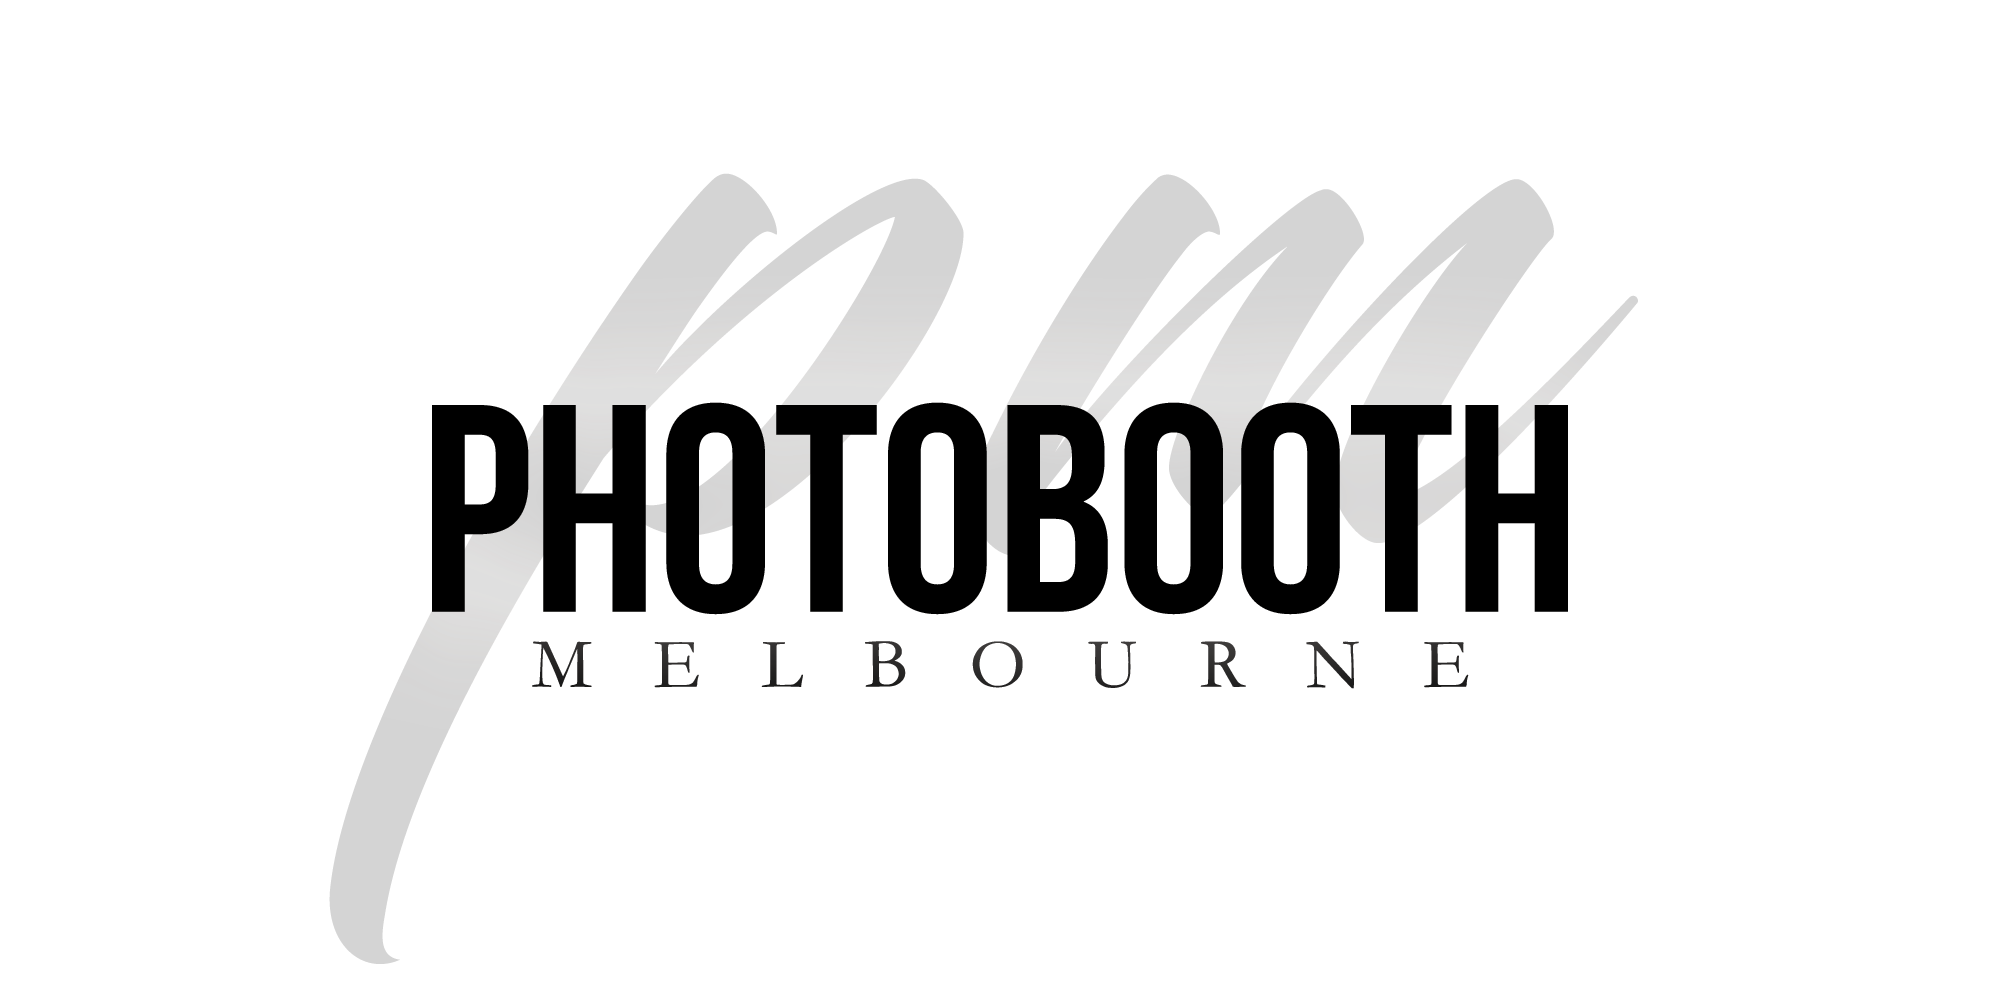 Photobooth Melbourne